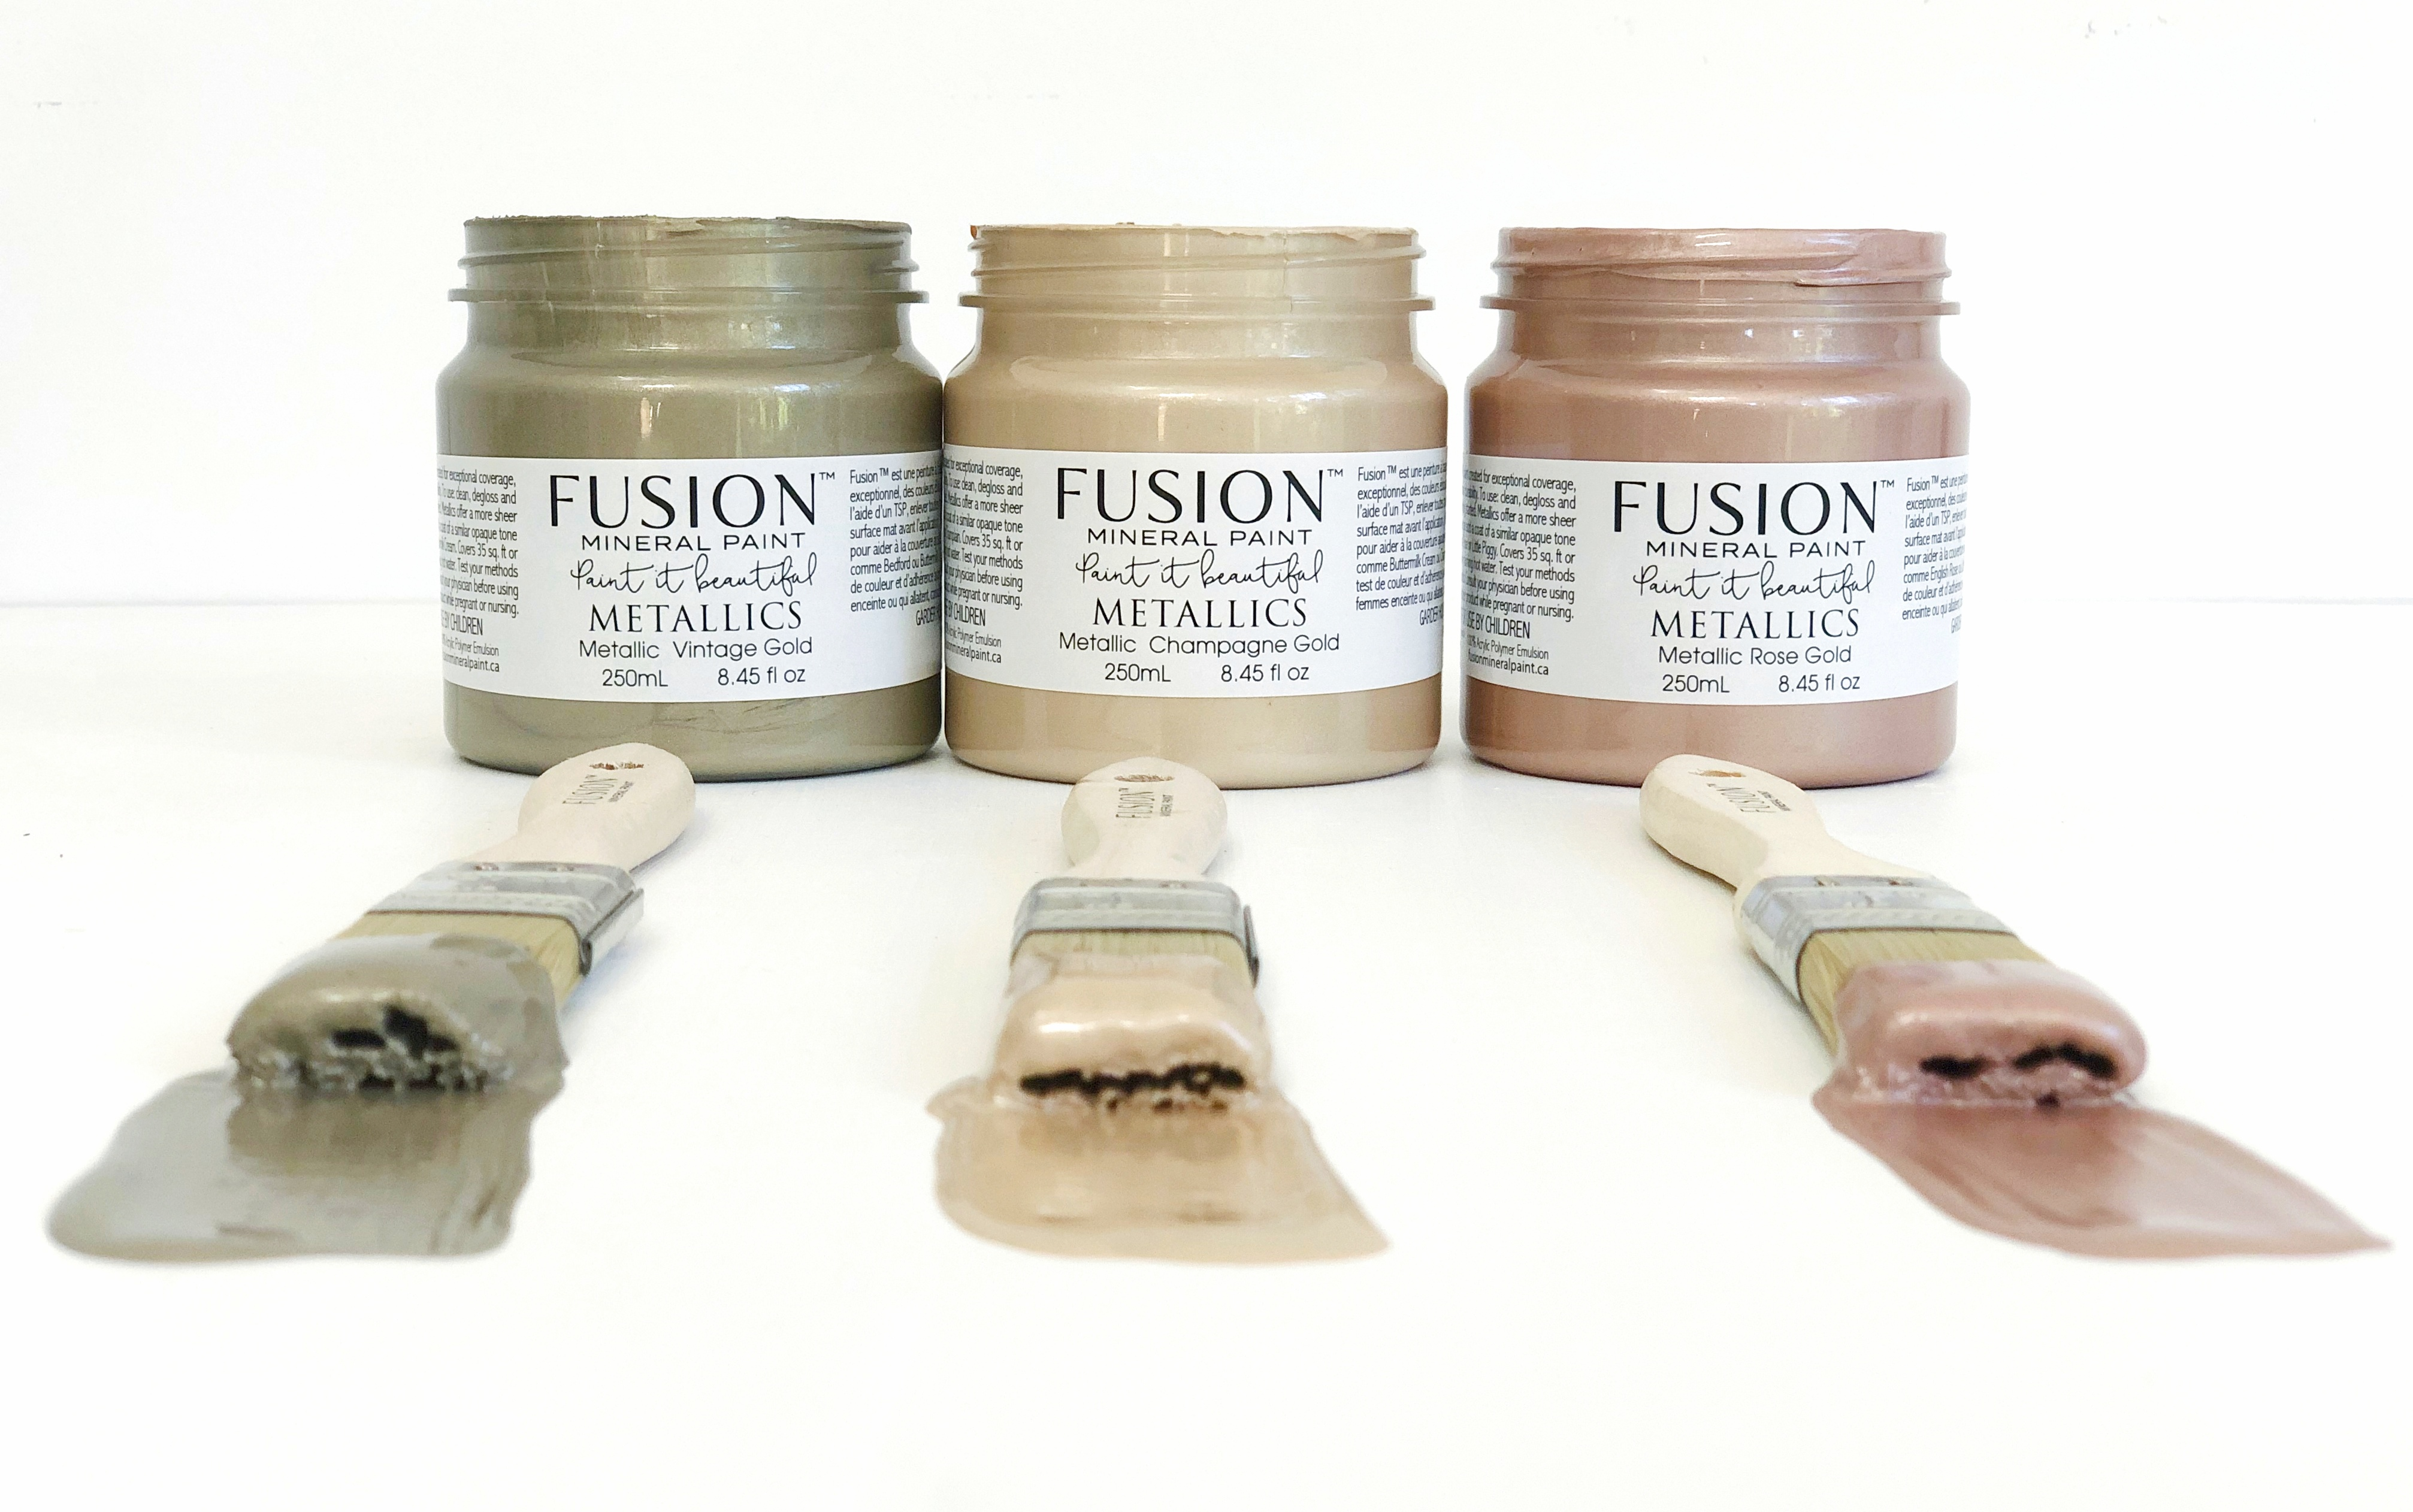 Fusion Mineral Paint S Limited Edition Metallics Fusion Mineral Paint